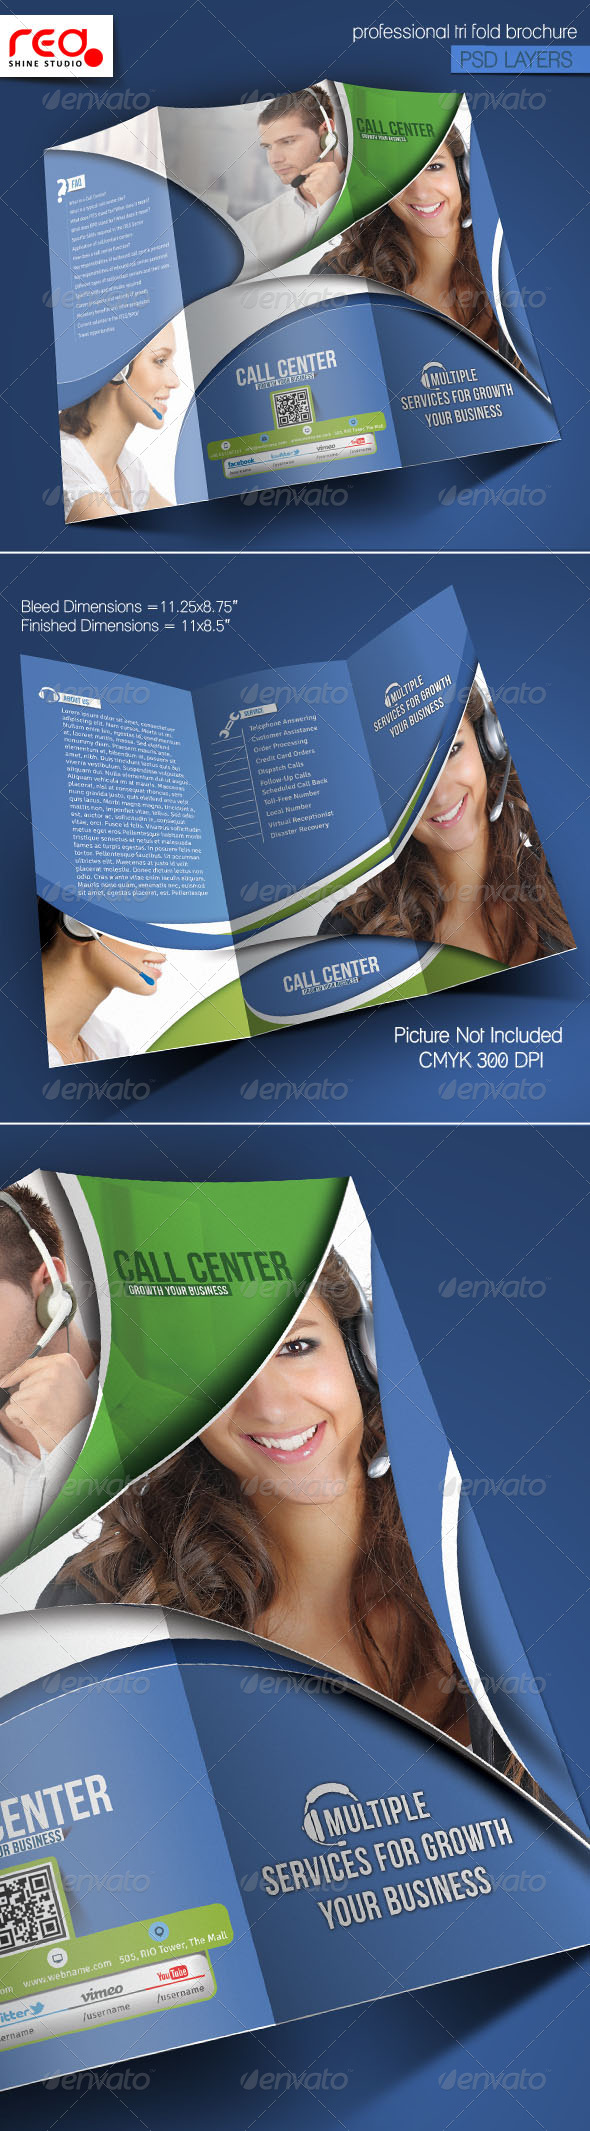 GraphicRiver Customer Support Trifold Brochure Template 2 5973746